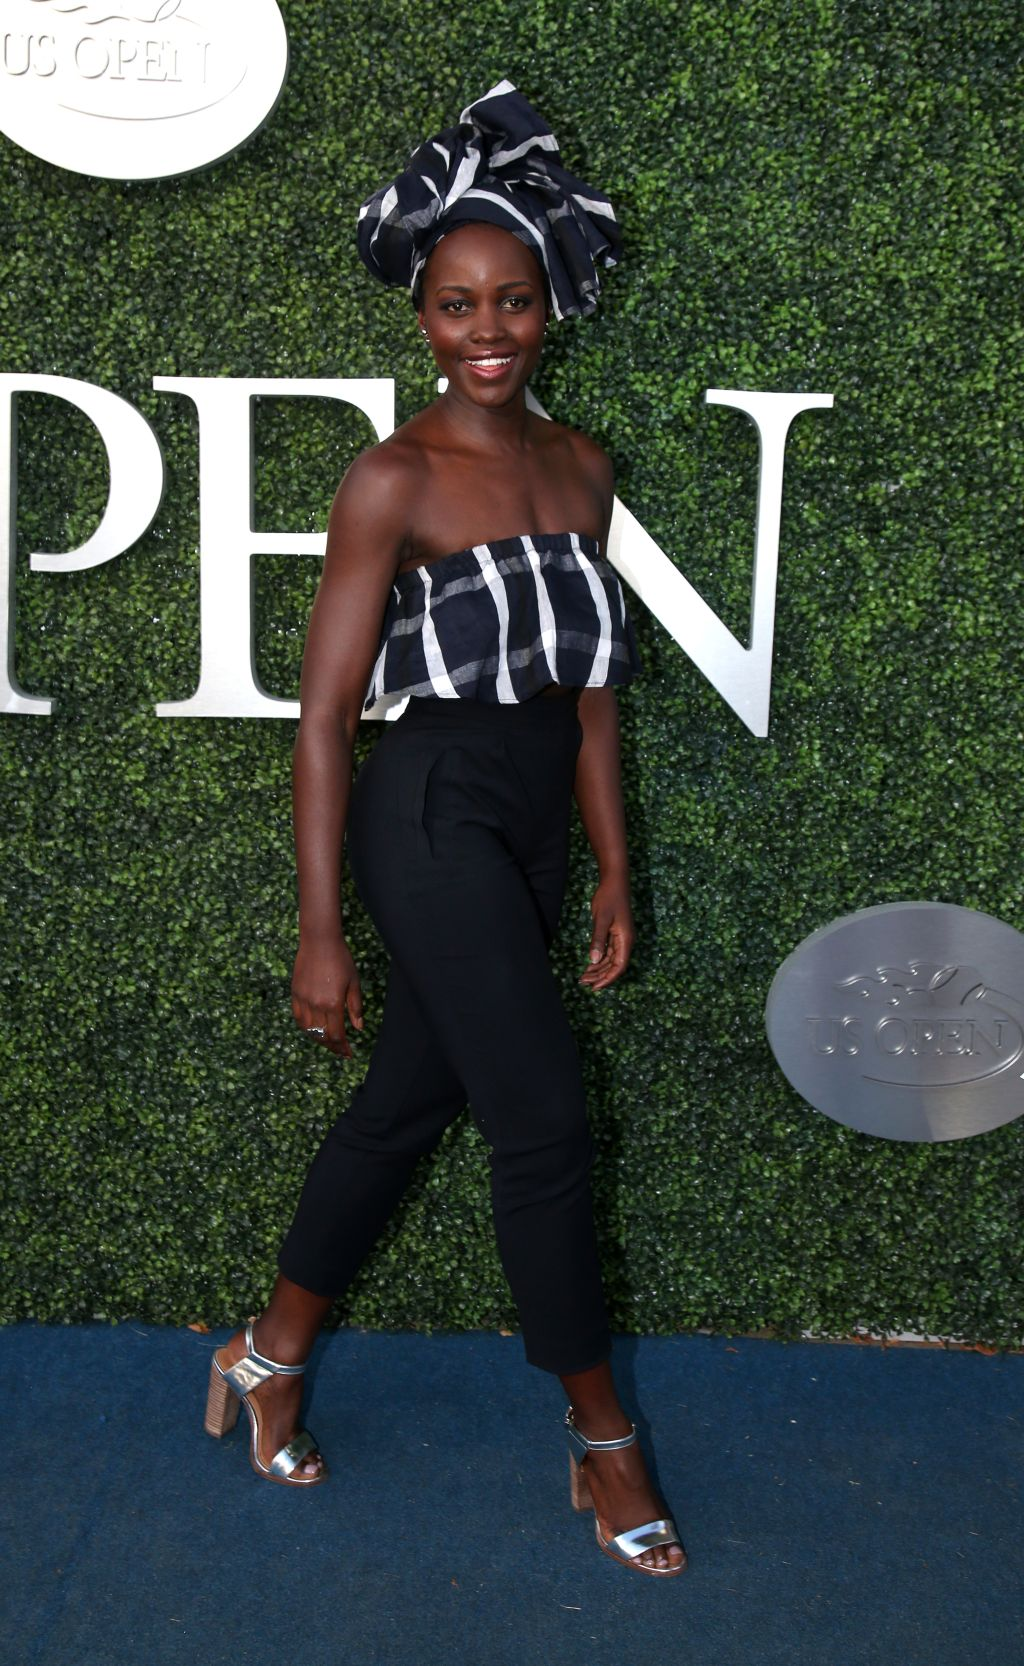 2016 US Open Celebrity Sightings - Day 2